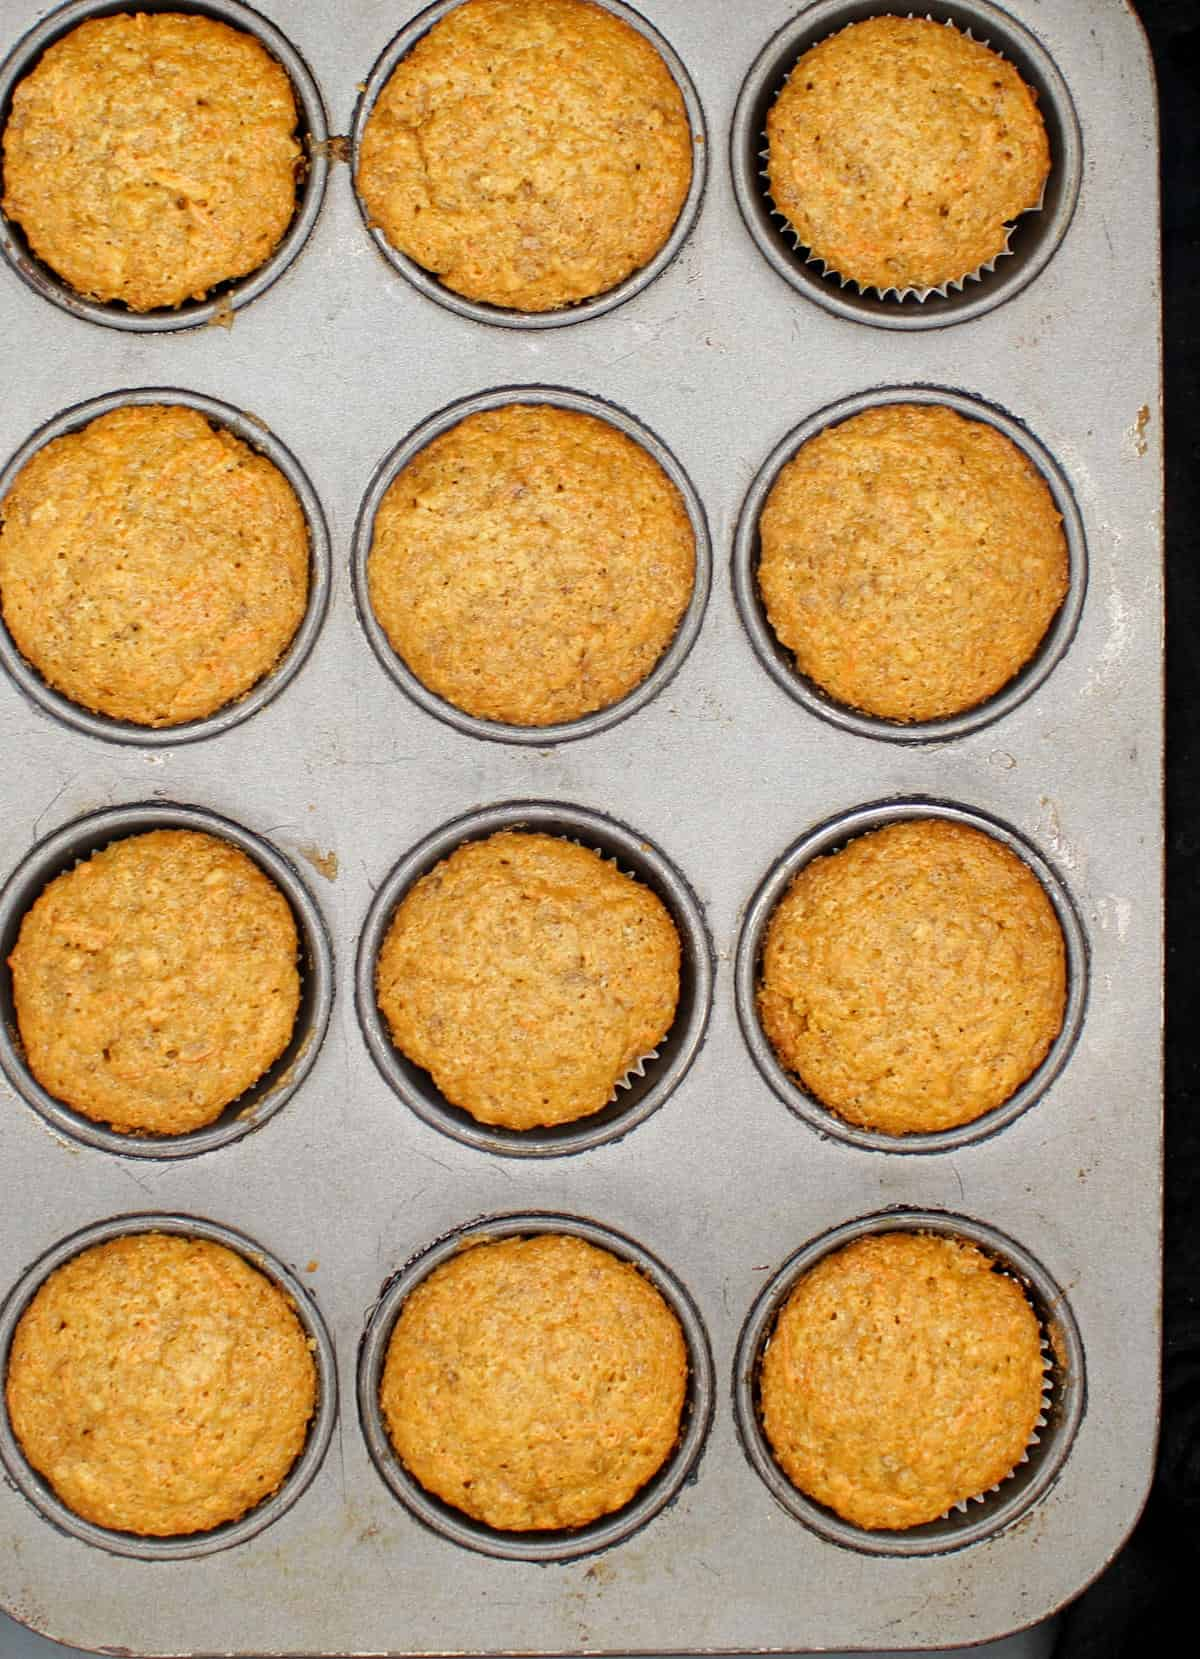 Vegan carrot cupcakes, freshly baked, in a muffin pan.